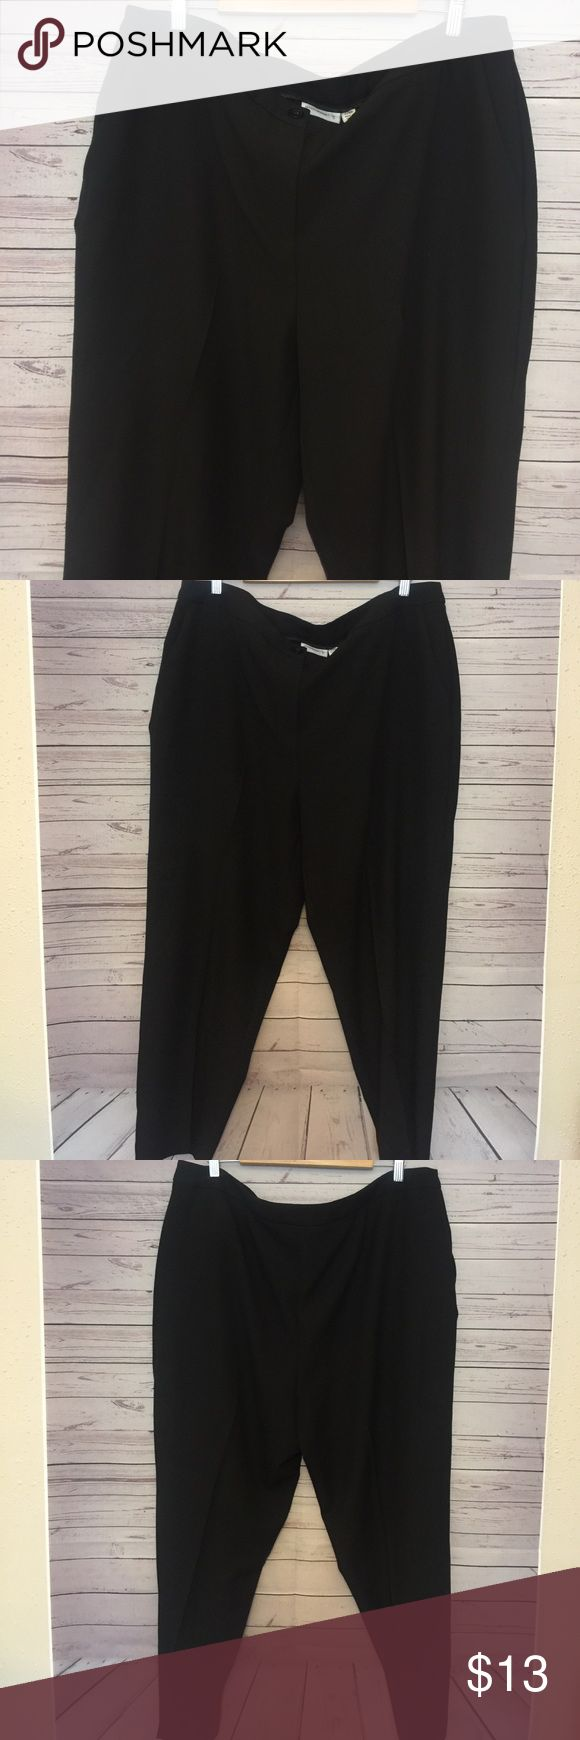 Susan Graver Women's Plus Size 22WP Capris Gently used no flaws waist 21 in Length 39 in inseam 27 in Susan Graver Pants Ankle & Cropped